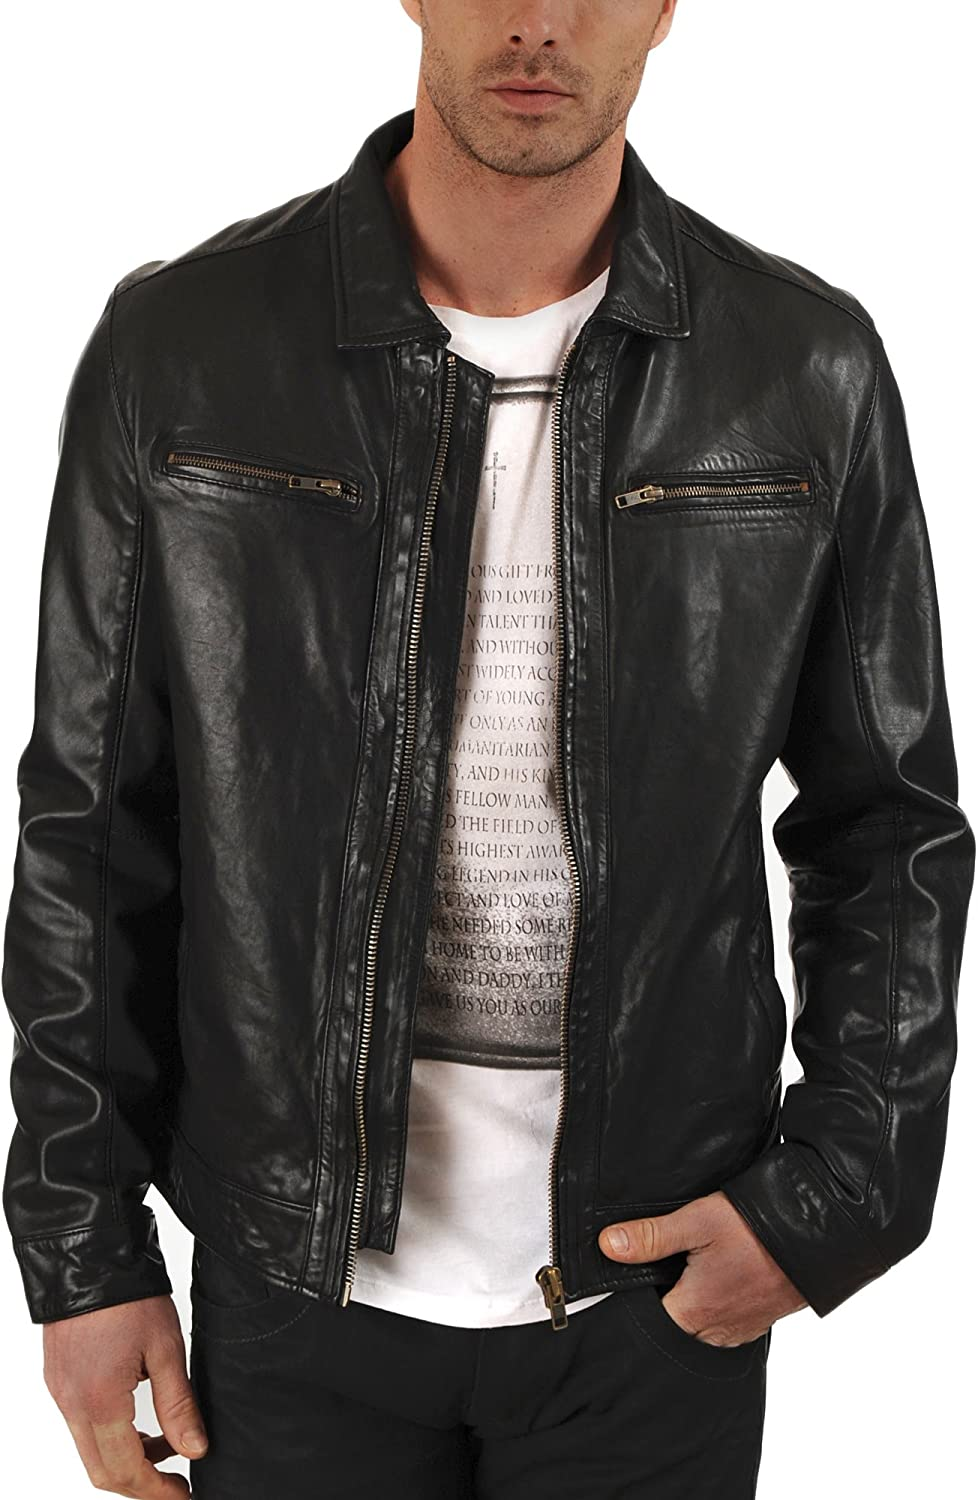 Kingdom Leather New Men Motorcycle Black Cowhide Cow Leather Jacket Coat Size XS S M L XL XC015